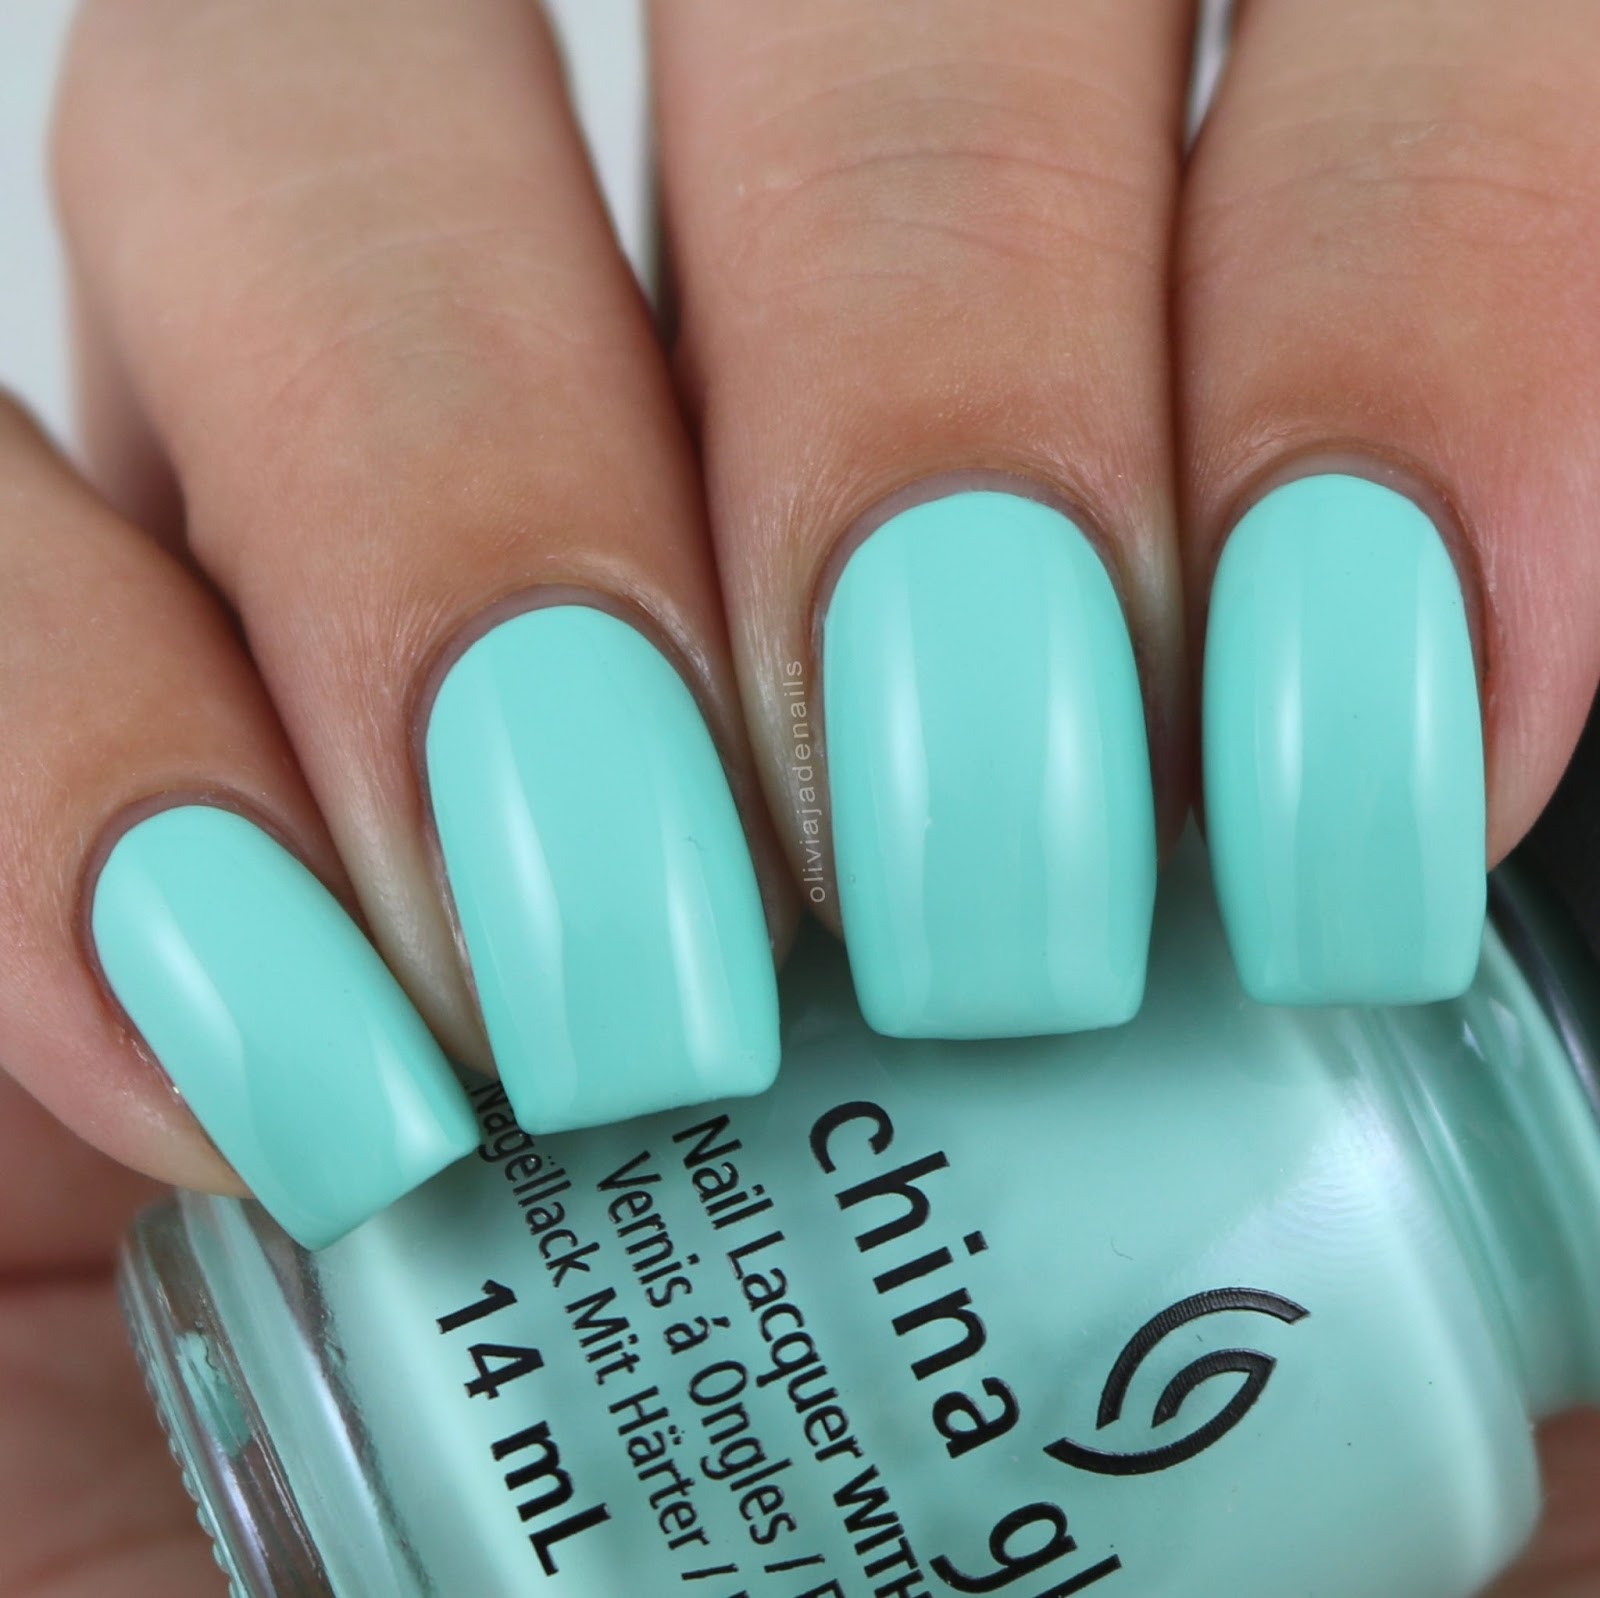 Olivia jade nails china glaze spring fling collection swatches picture nvjuhfo Gallery